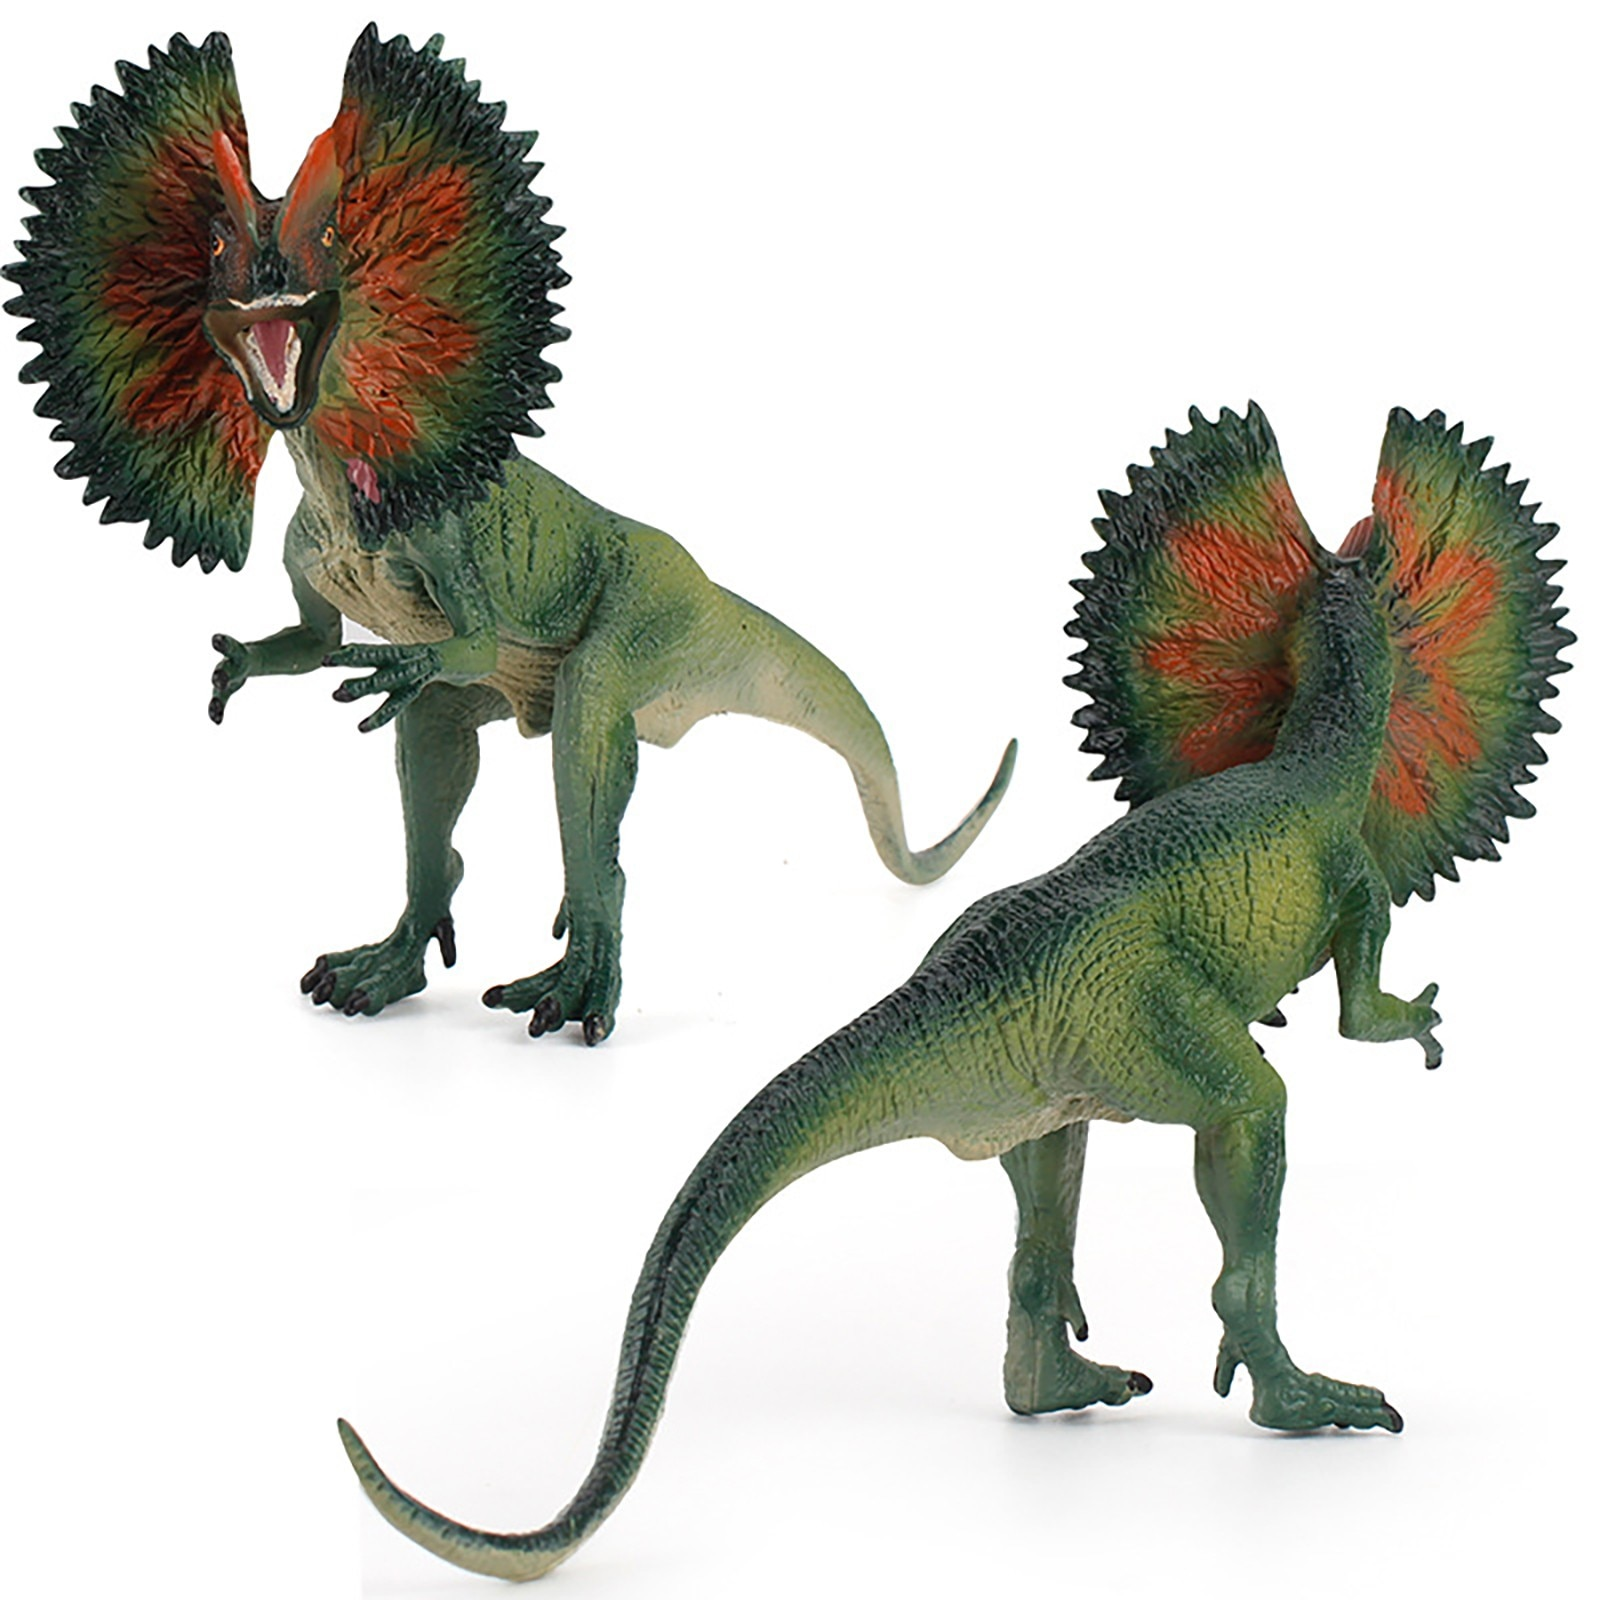 Realistic Dinosaur Model Lifelike Dilophosaurus Dinosaurs Figure Toy Simulation Dinosaurs Biological Toy Kid Educational Toys lifelike dinosaur model static solid mosasaurus dinosaur realistic figures perfect toys decoration for party favor kid toy gift